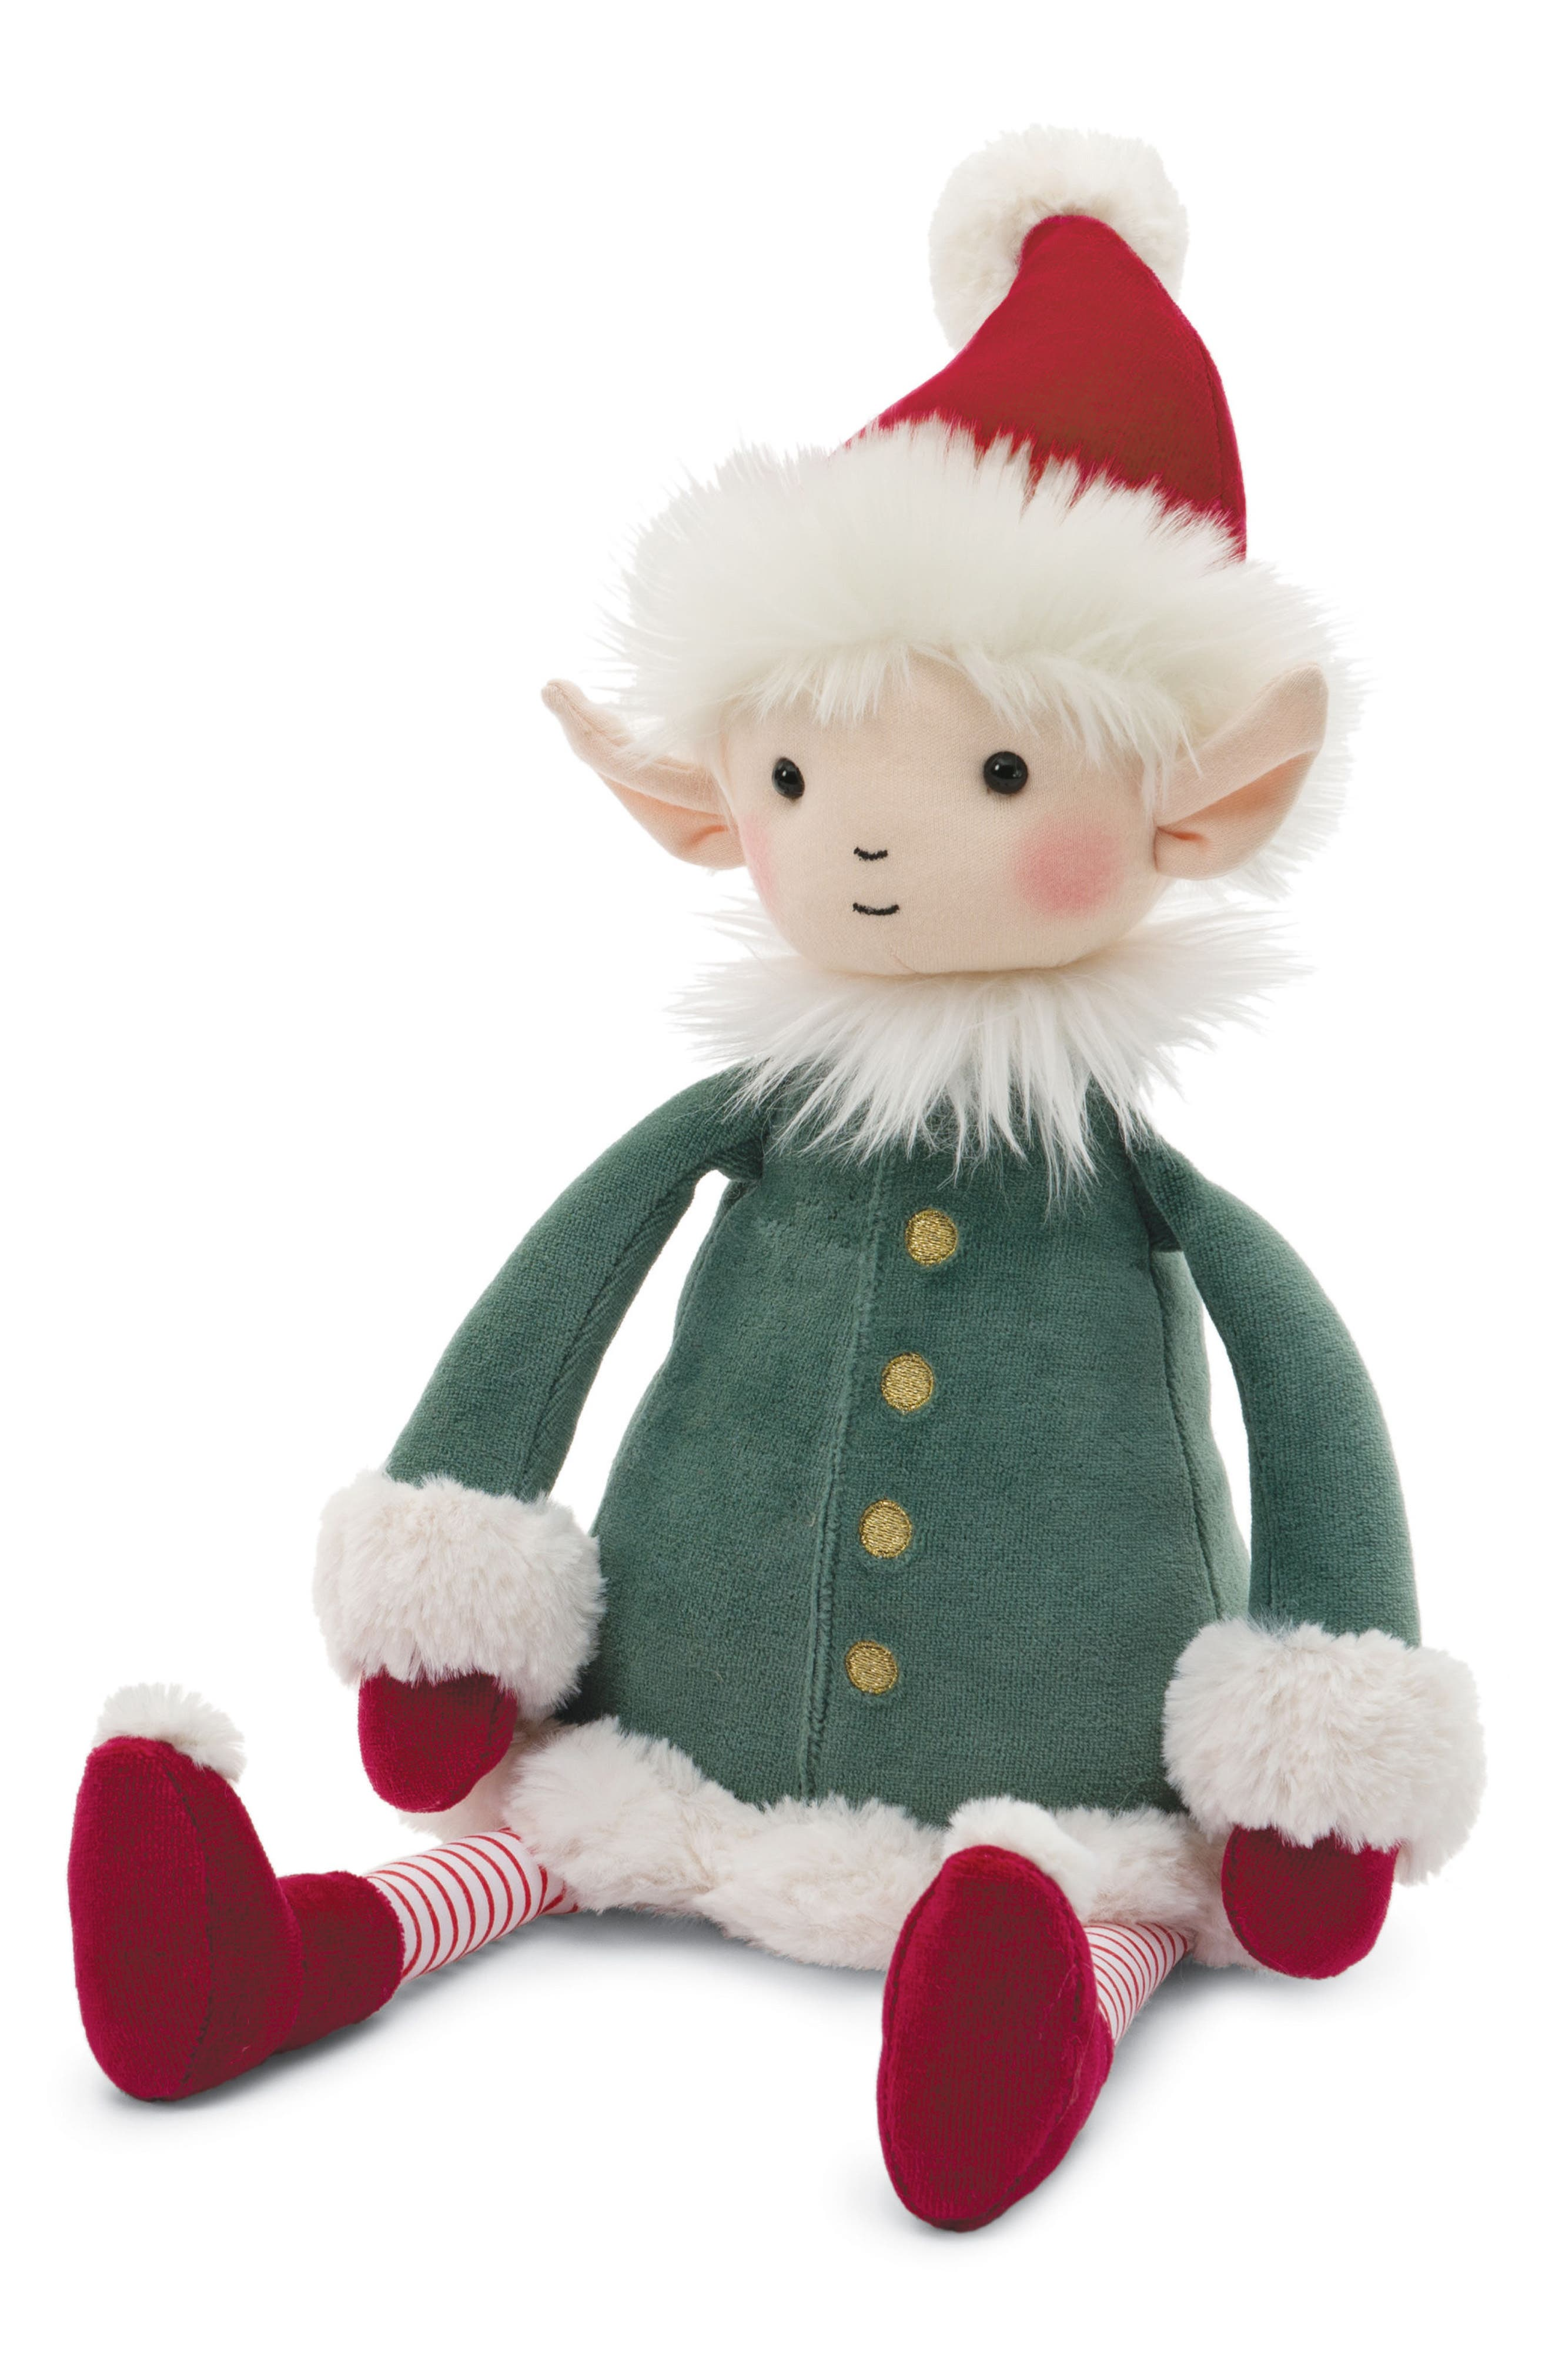 Jellycat Medium Elf Stuffed Doll